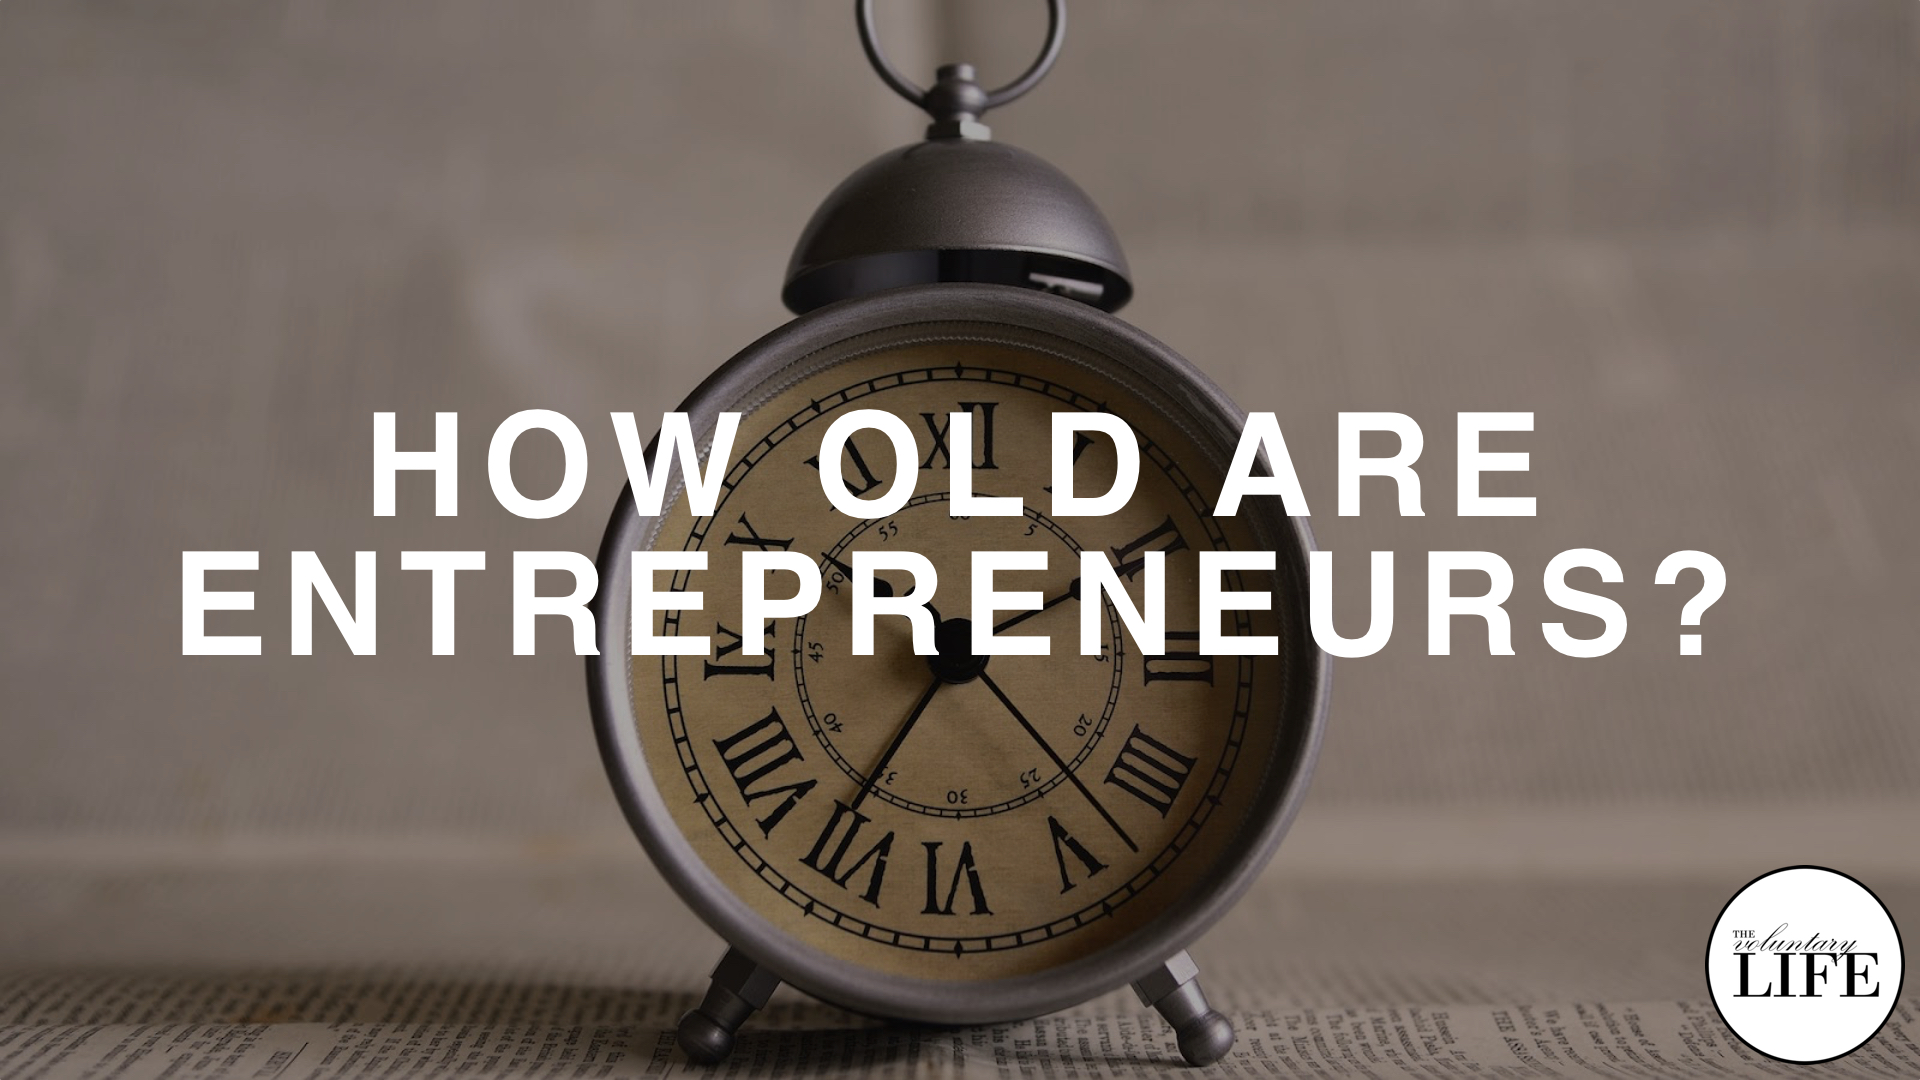 301 How Old Are Entrepreneurs